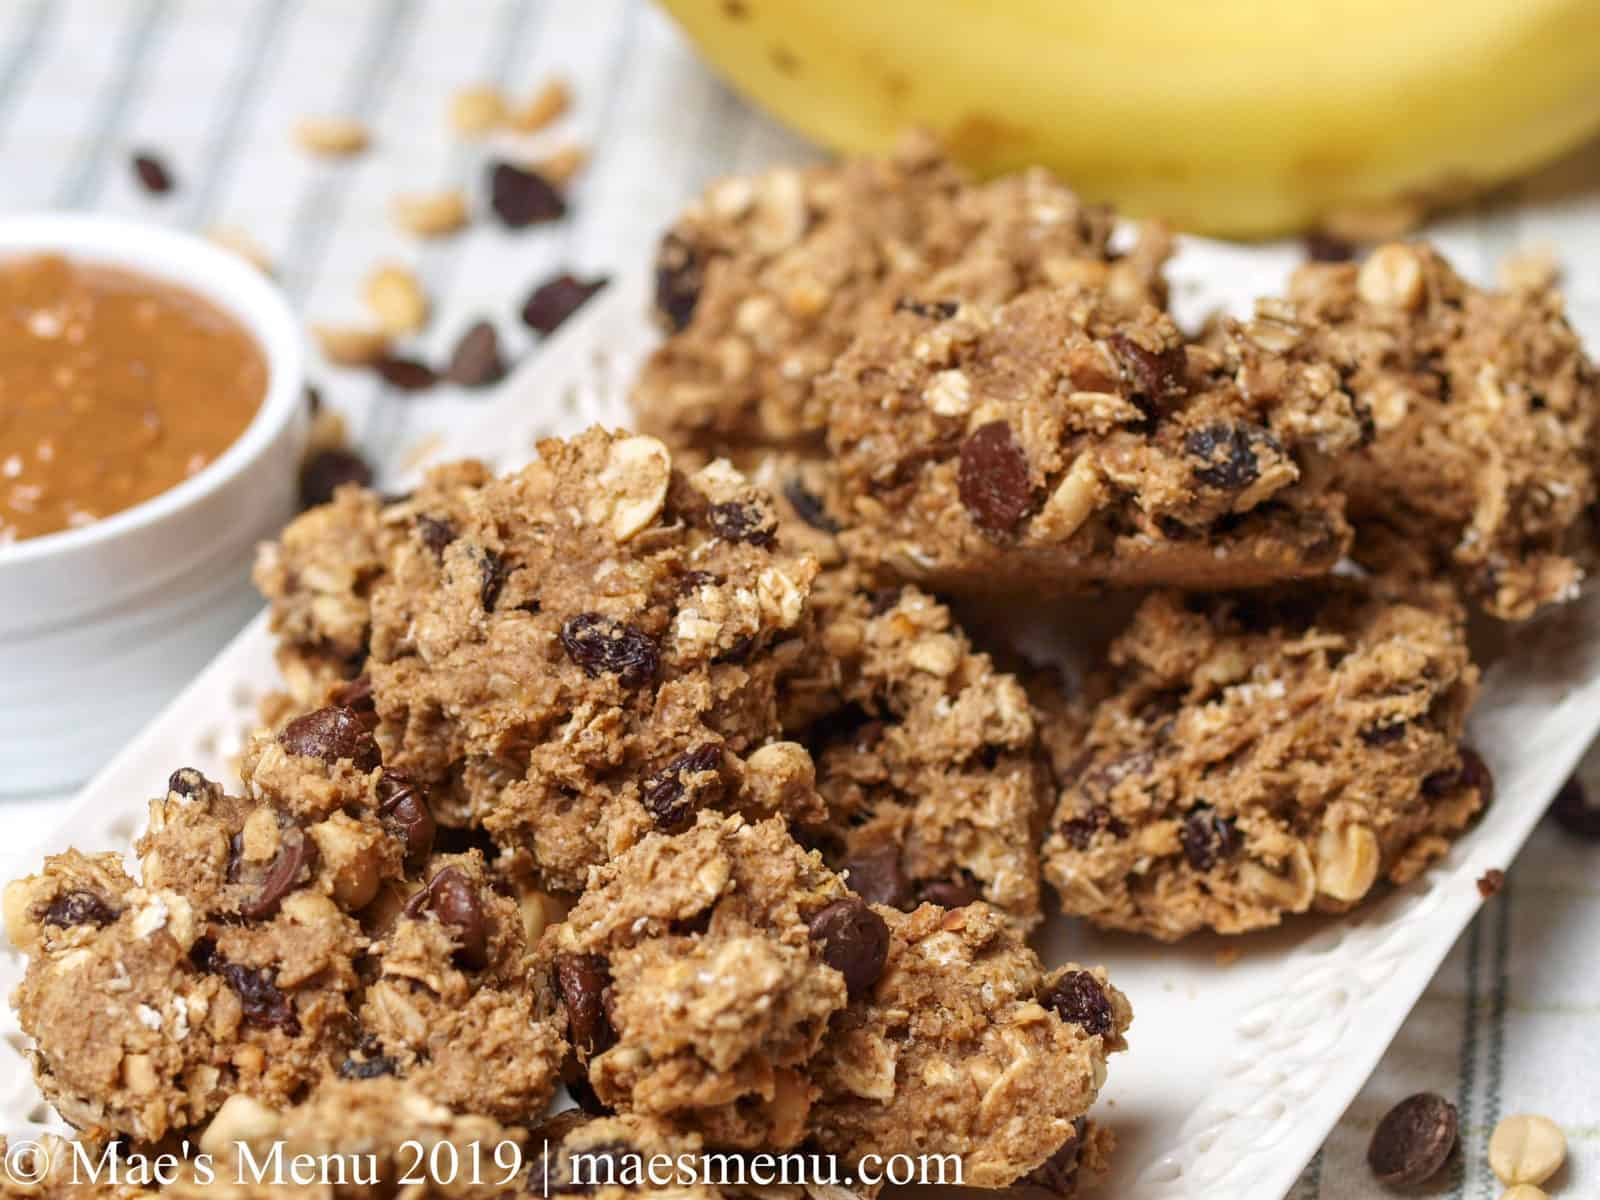 Plate of protein breakfast cookies next to a crock of peanut butter, bananas, peanuts, raisins, and chocolate chips.